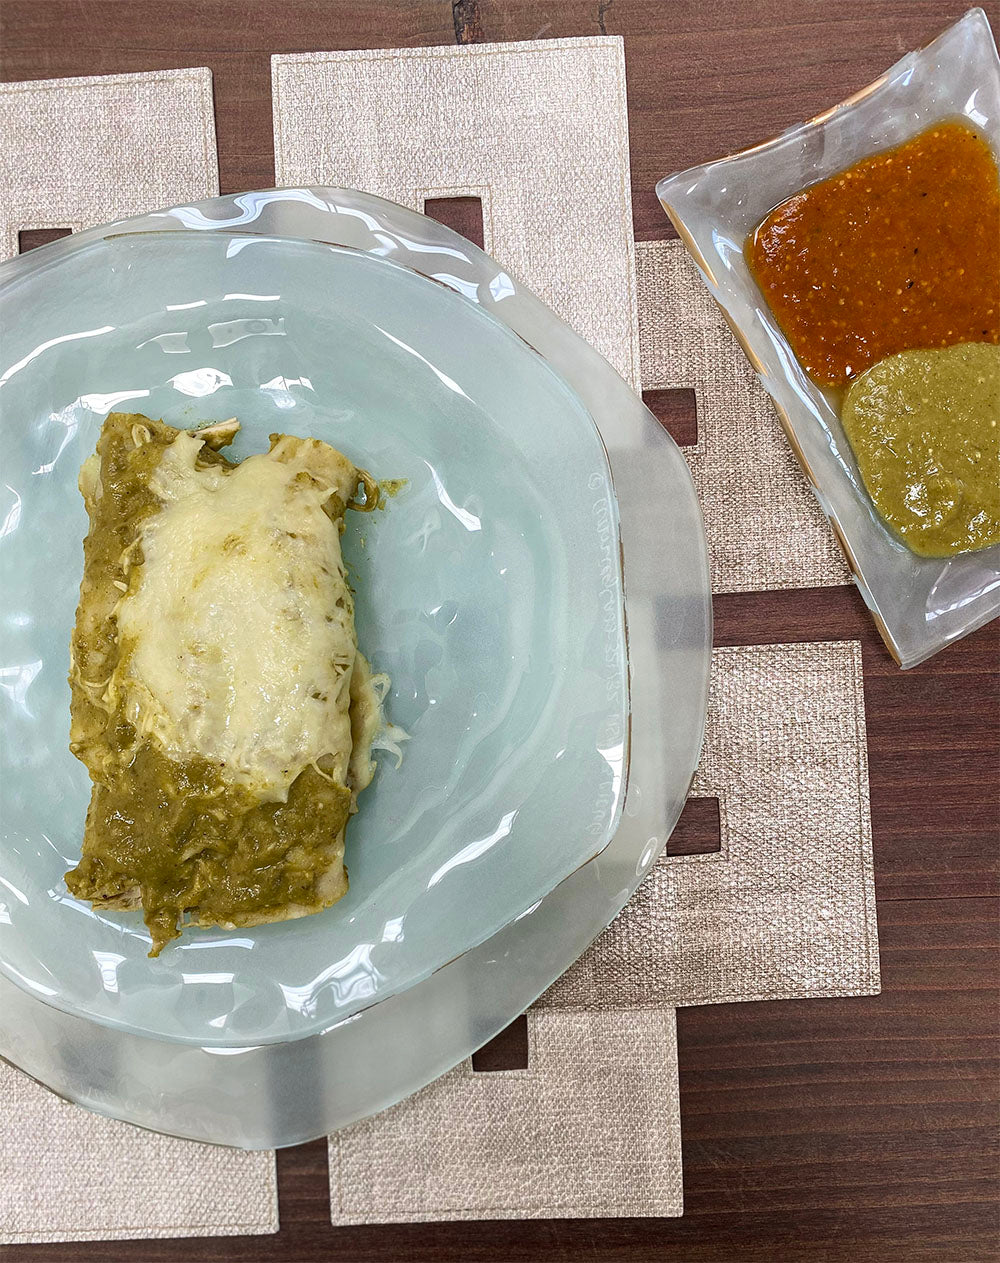 Green Chicken Enchilada on the Annieglass frosted glass dinner plates